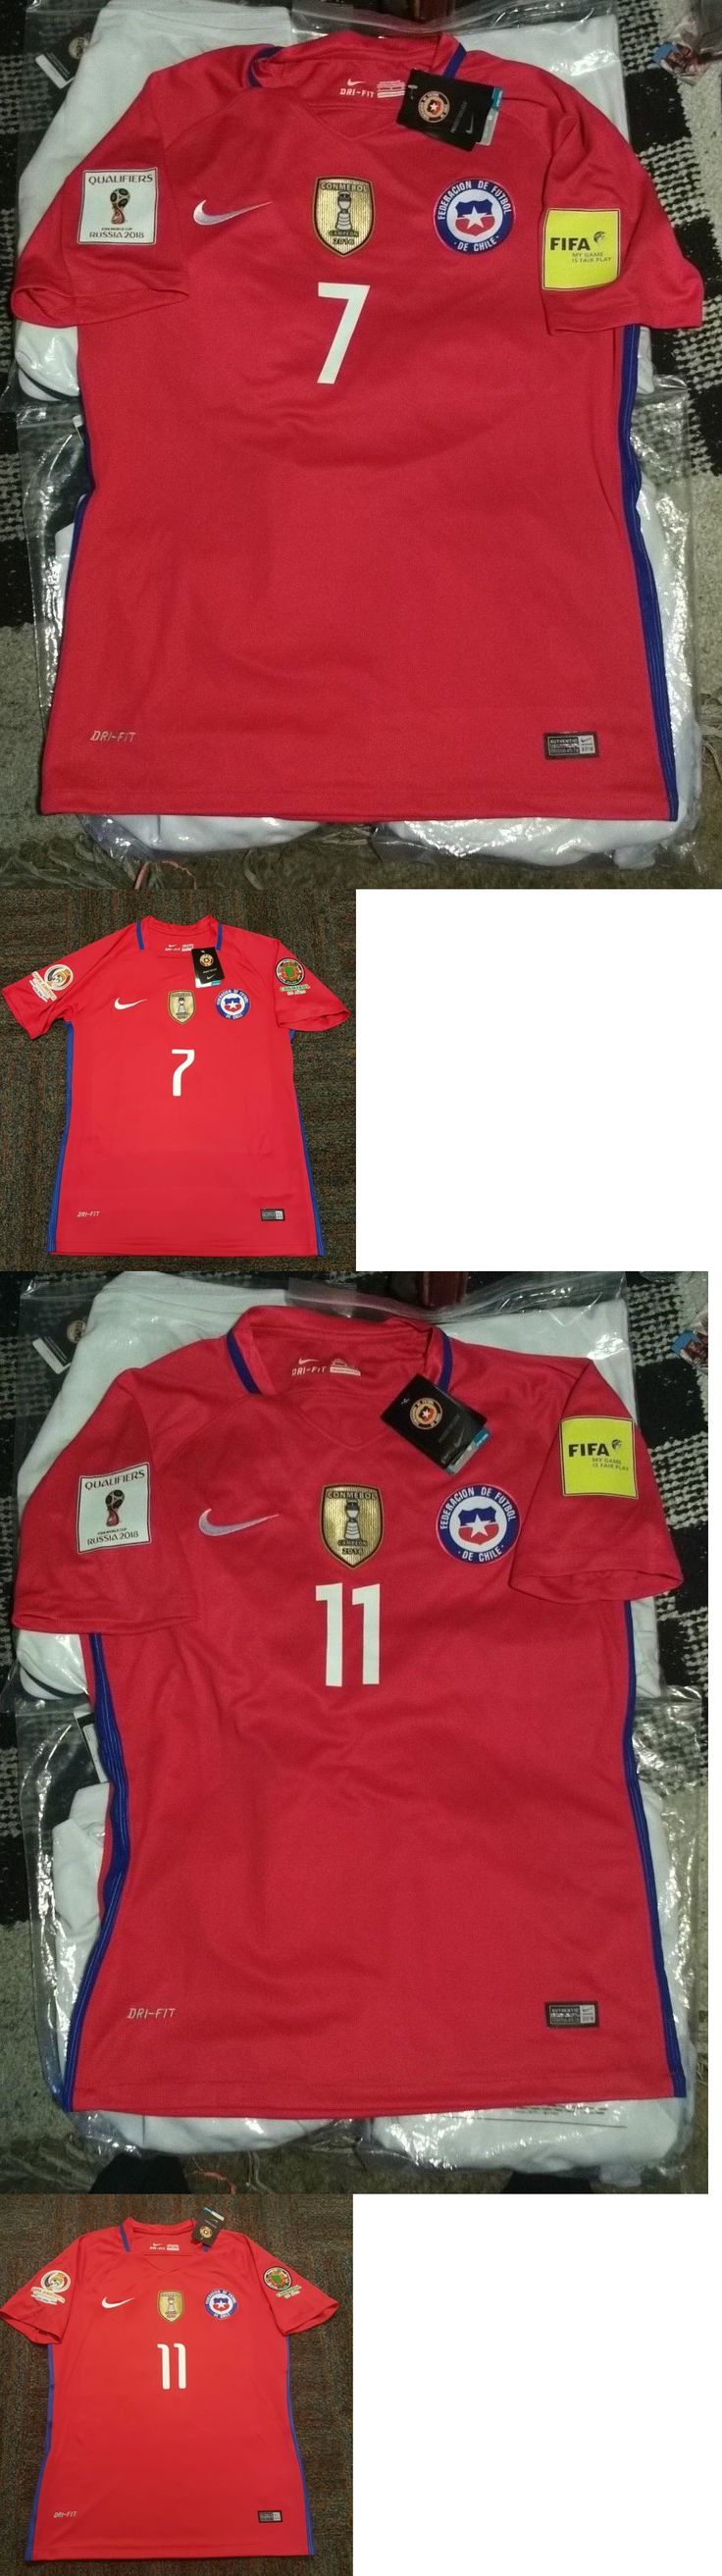 Soccer-National Teams 2891: 2017 Chile Soccer Jersey Camisa De Chile Futbol -> BUY IT NOW ONLY: $74 on eBay!